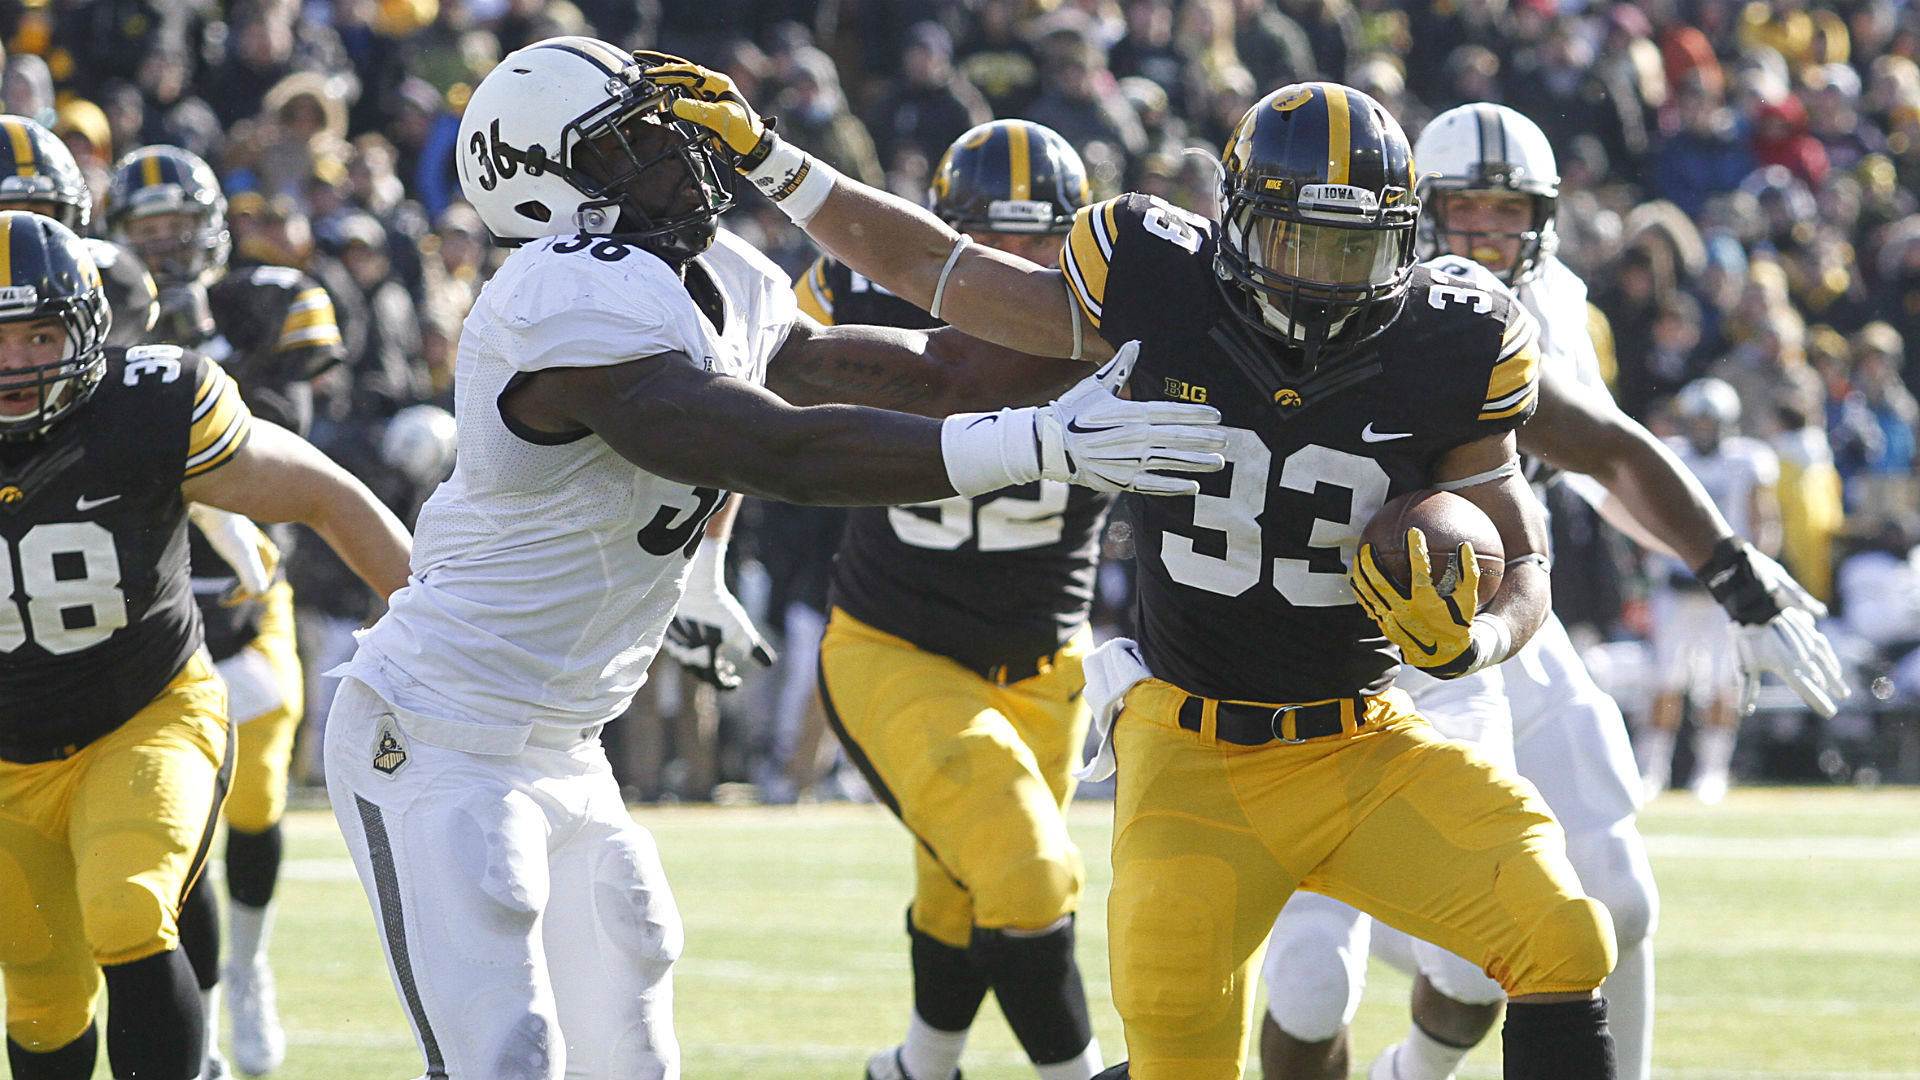 Iowa at Nebraska betting lines and pick – Is this where Hawkeyes' bubble bursts?